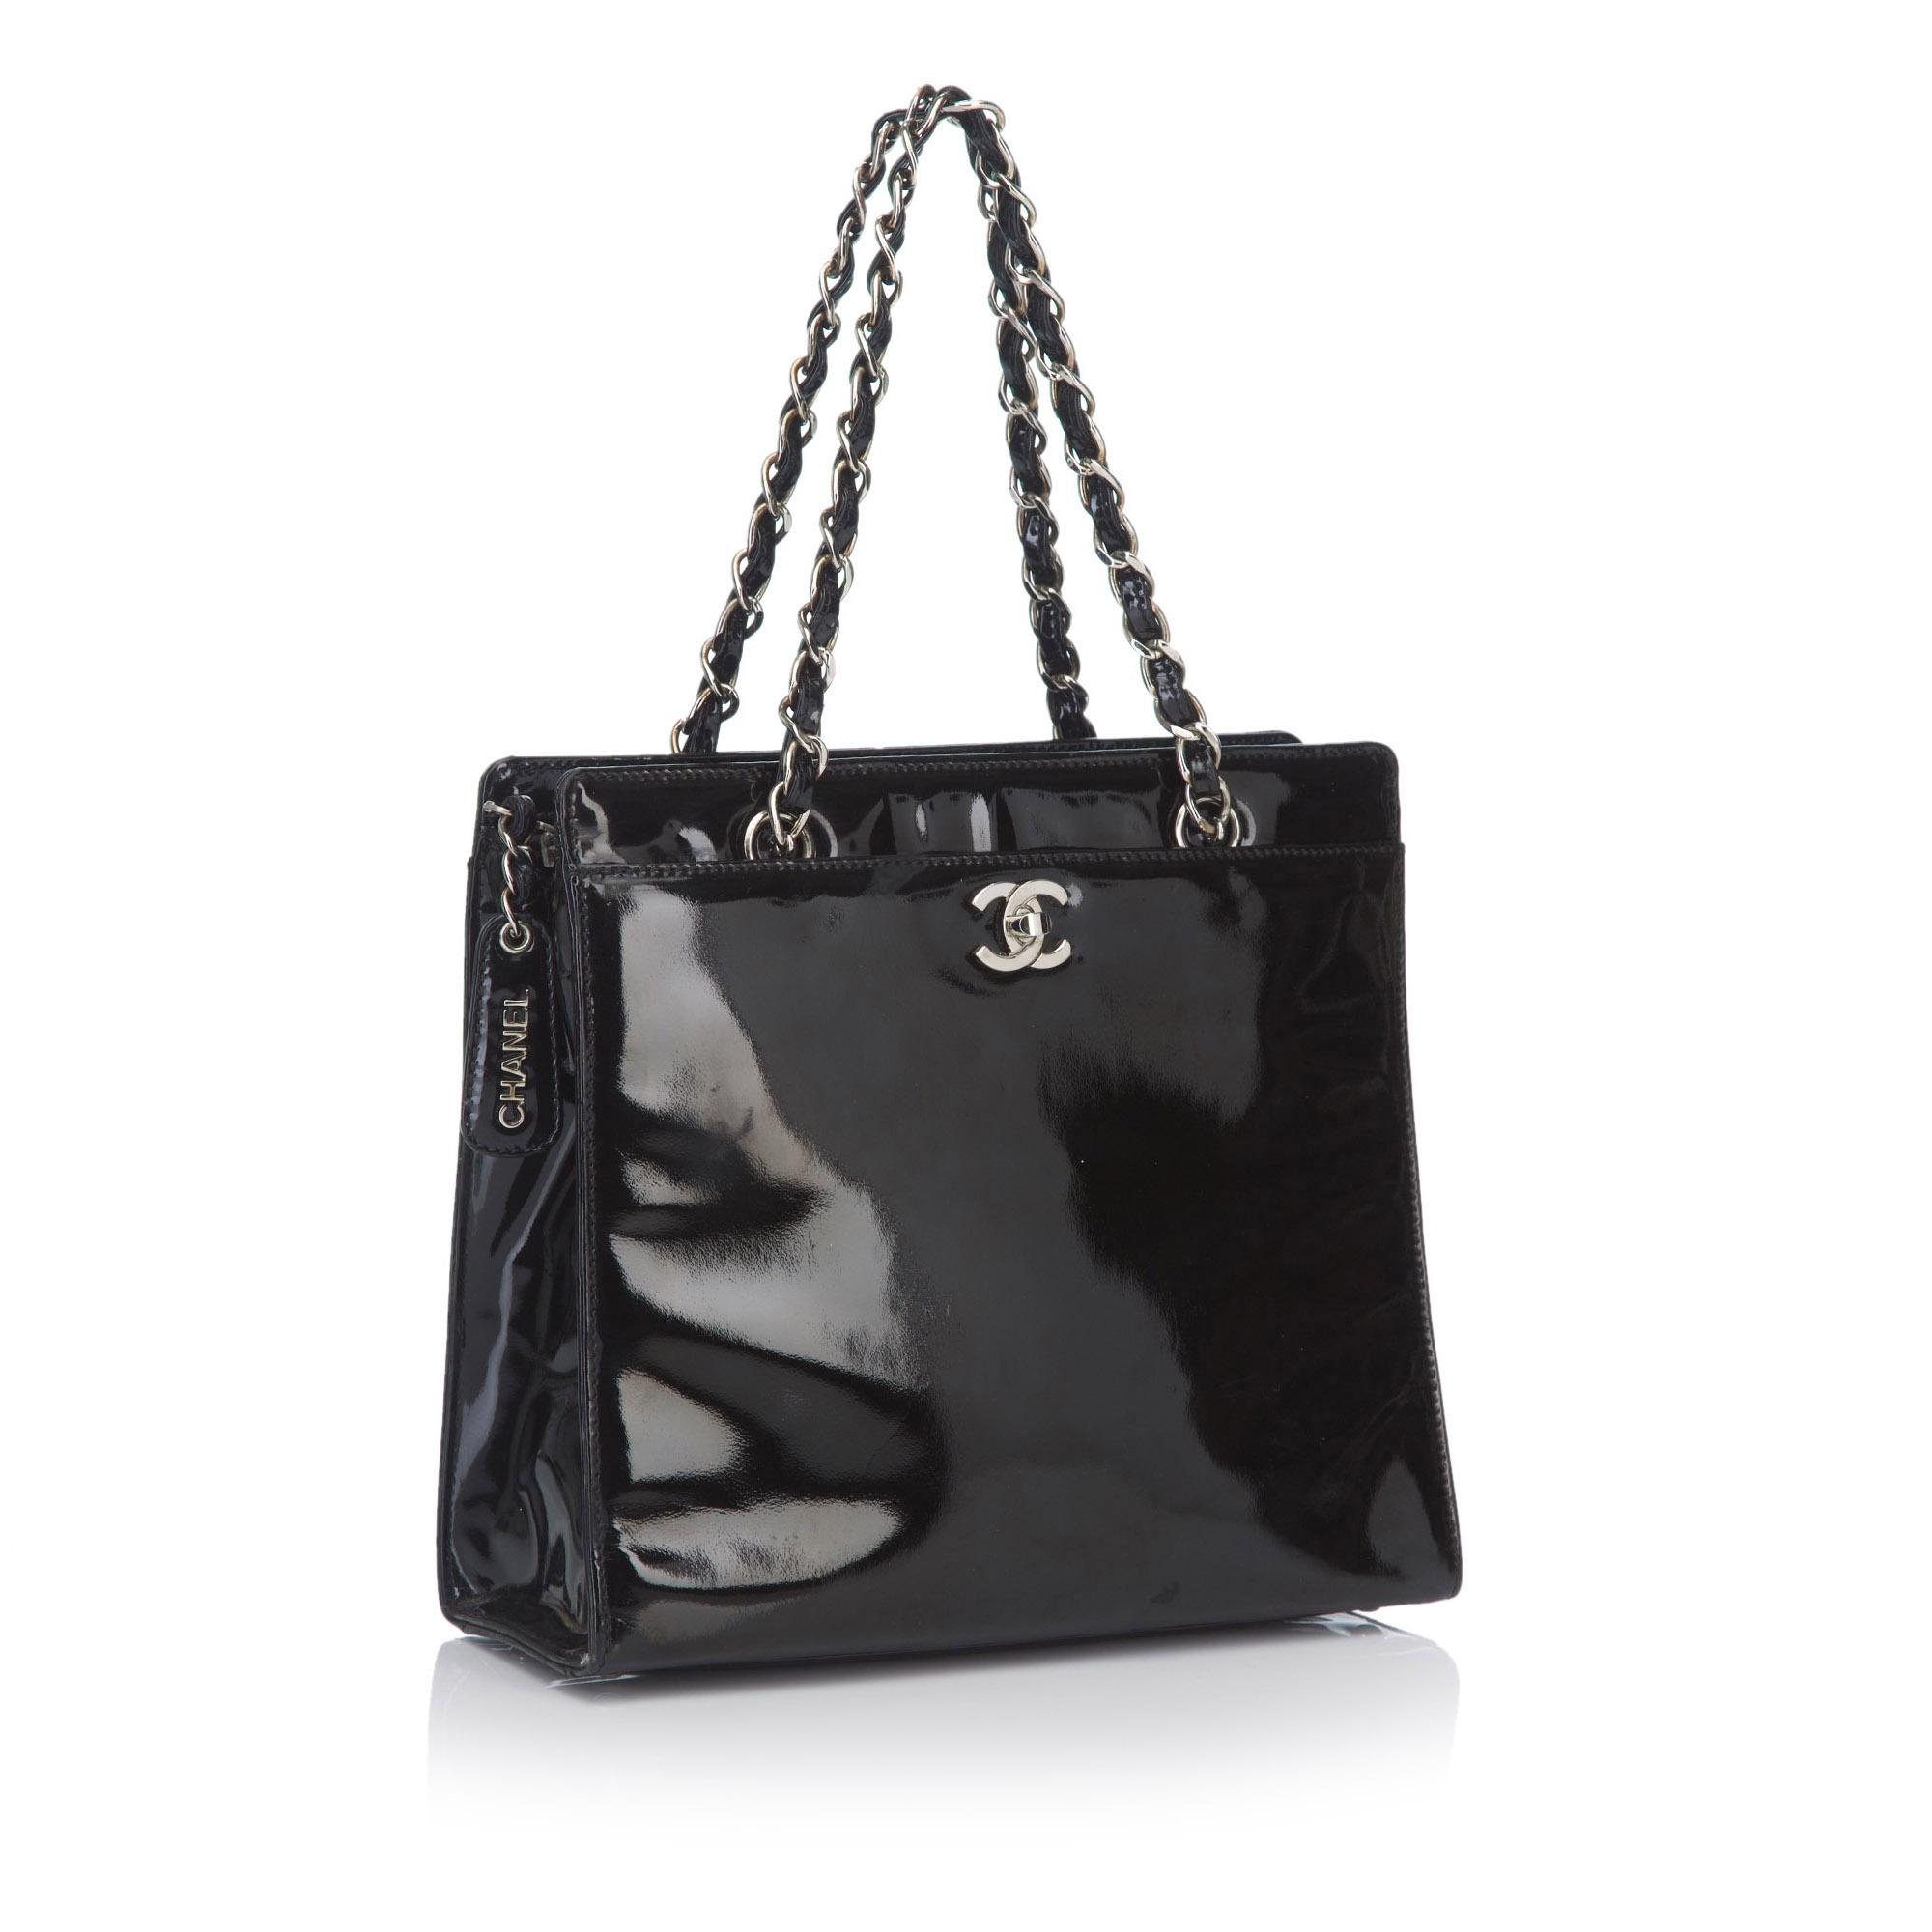 a4cff3bfe332 Chanel - Black Patent Leather Chain Tote Bag - Lyst. View fullscreen